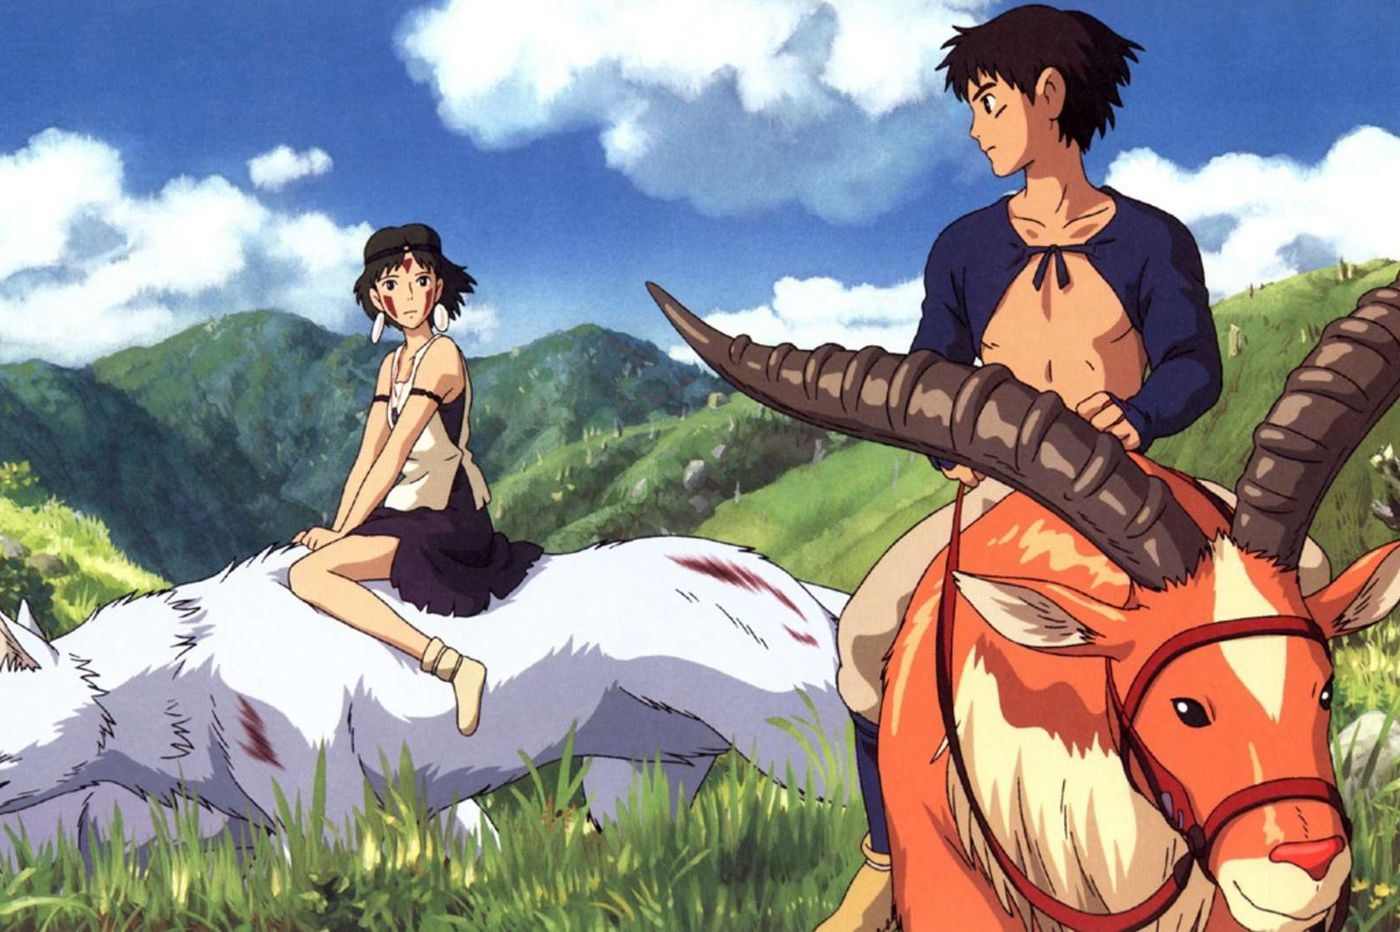 Jawnts: Film that made anime respected